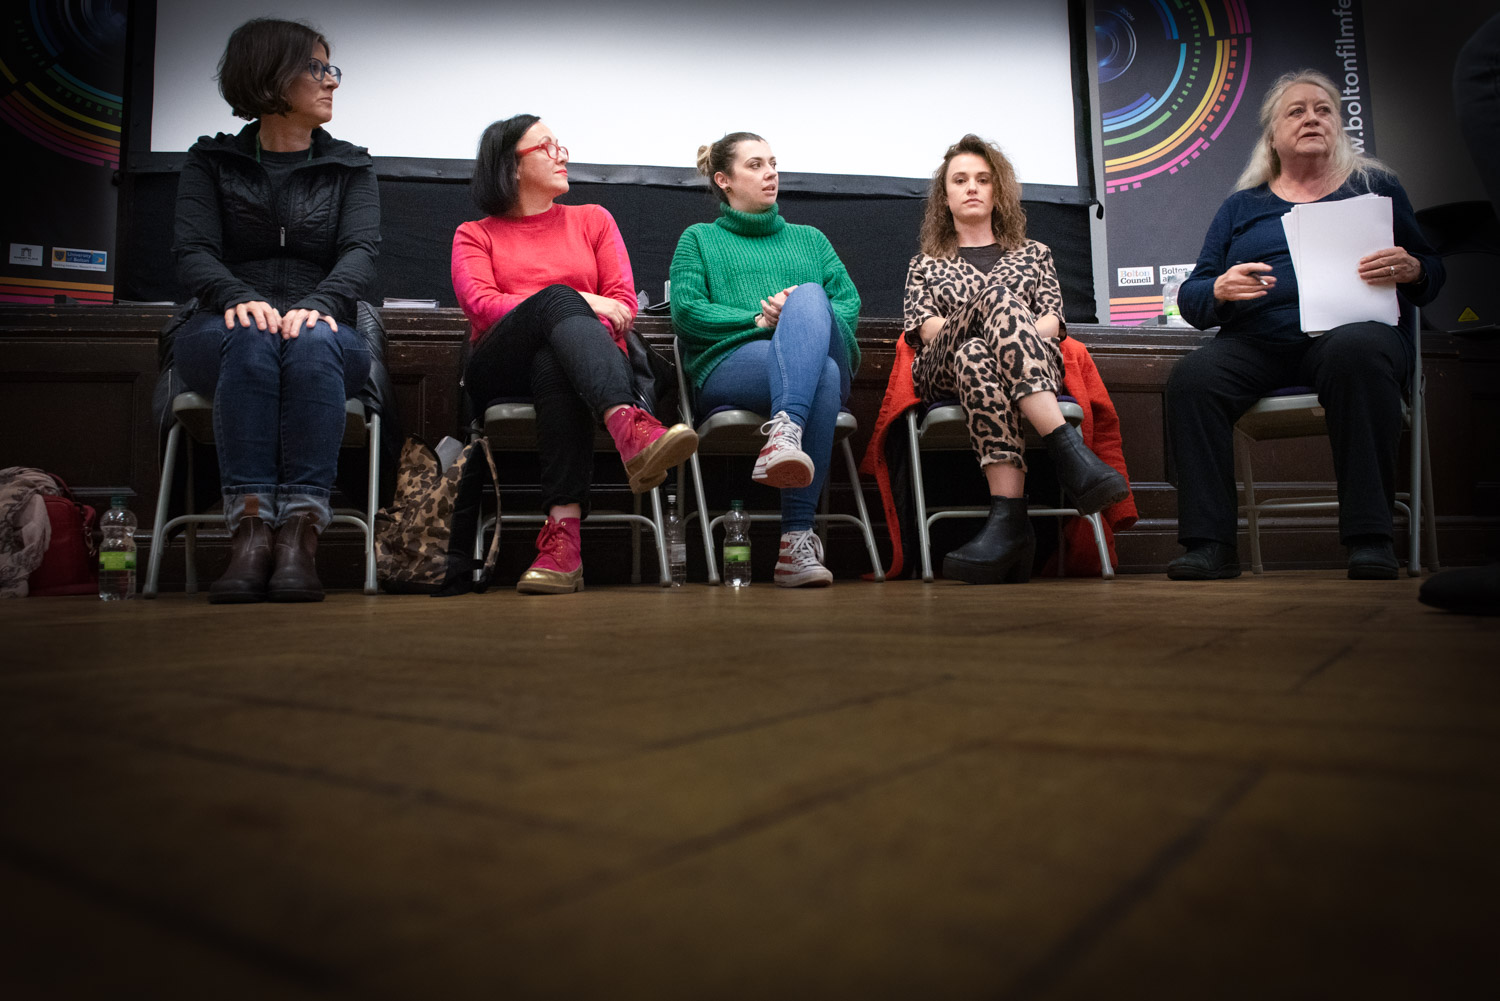 Woman in Film discussion panel